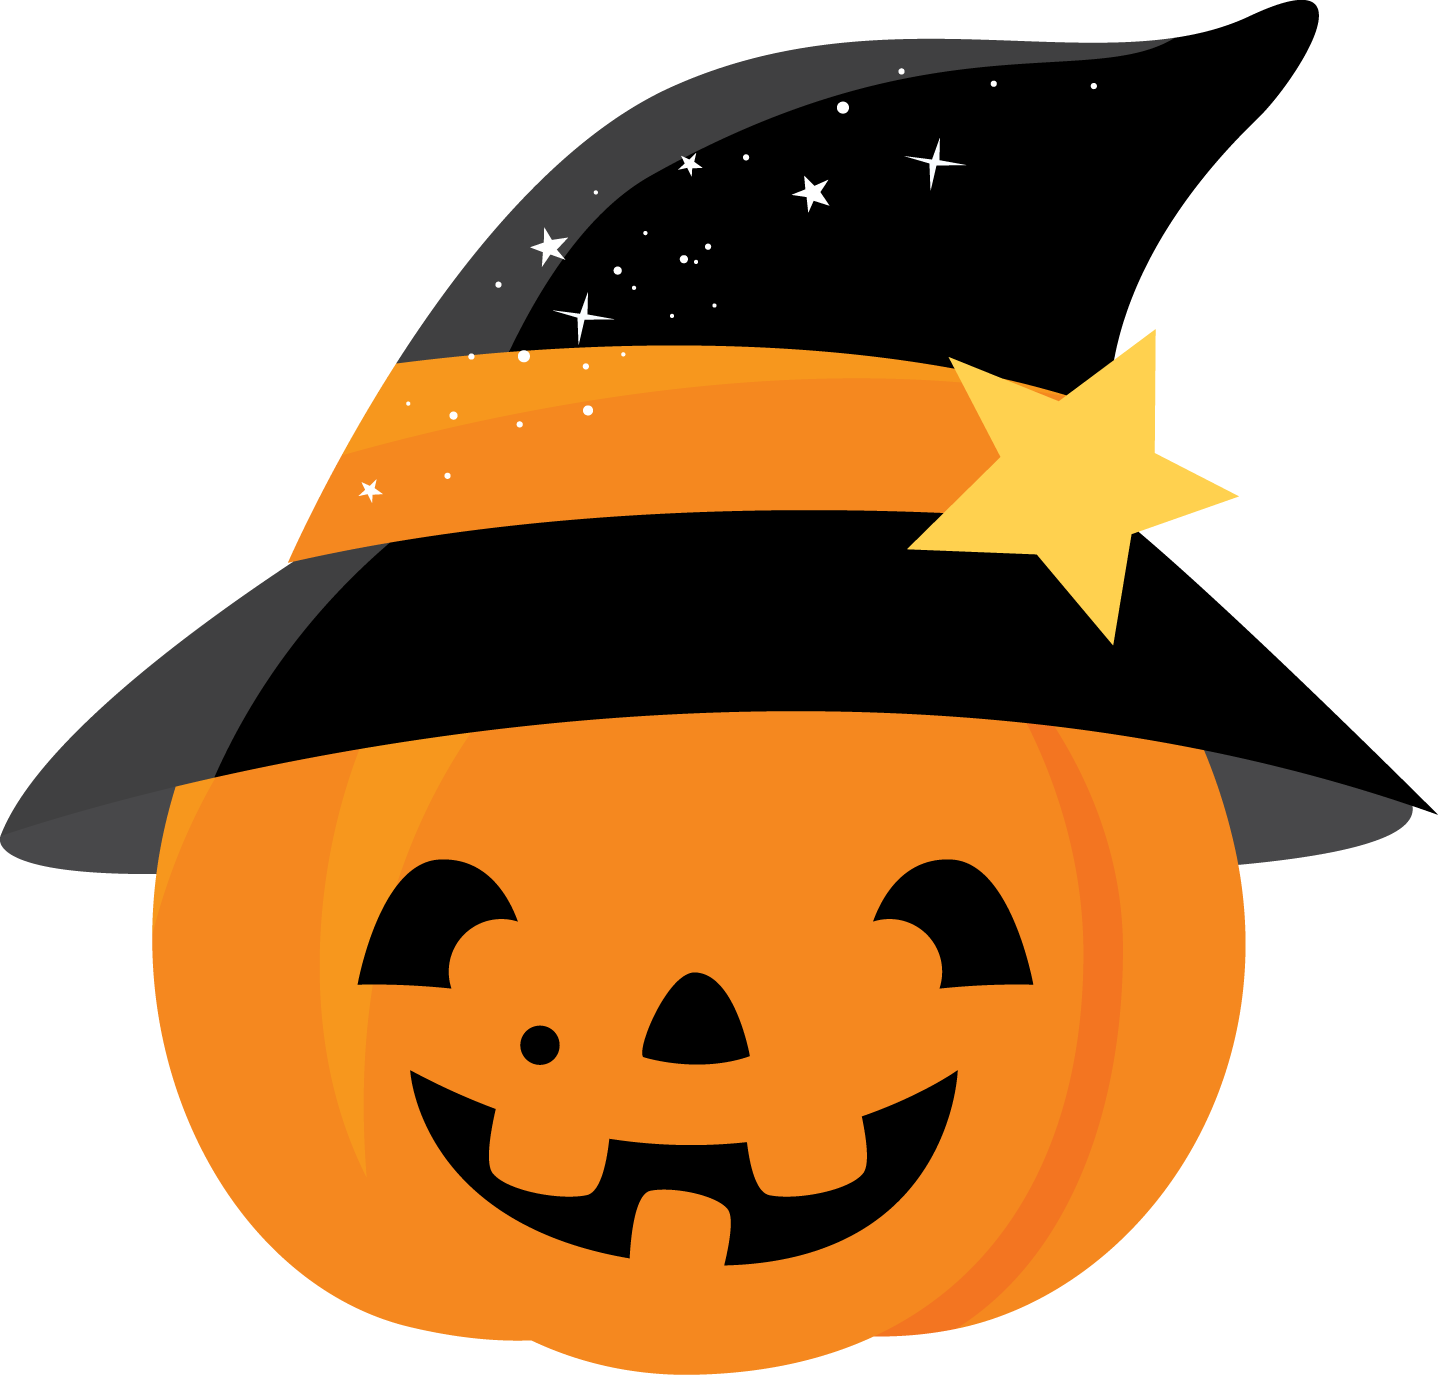 Halloween Pumpkin Clipart. - Oh My Fiesta! in english